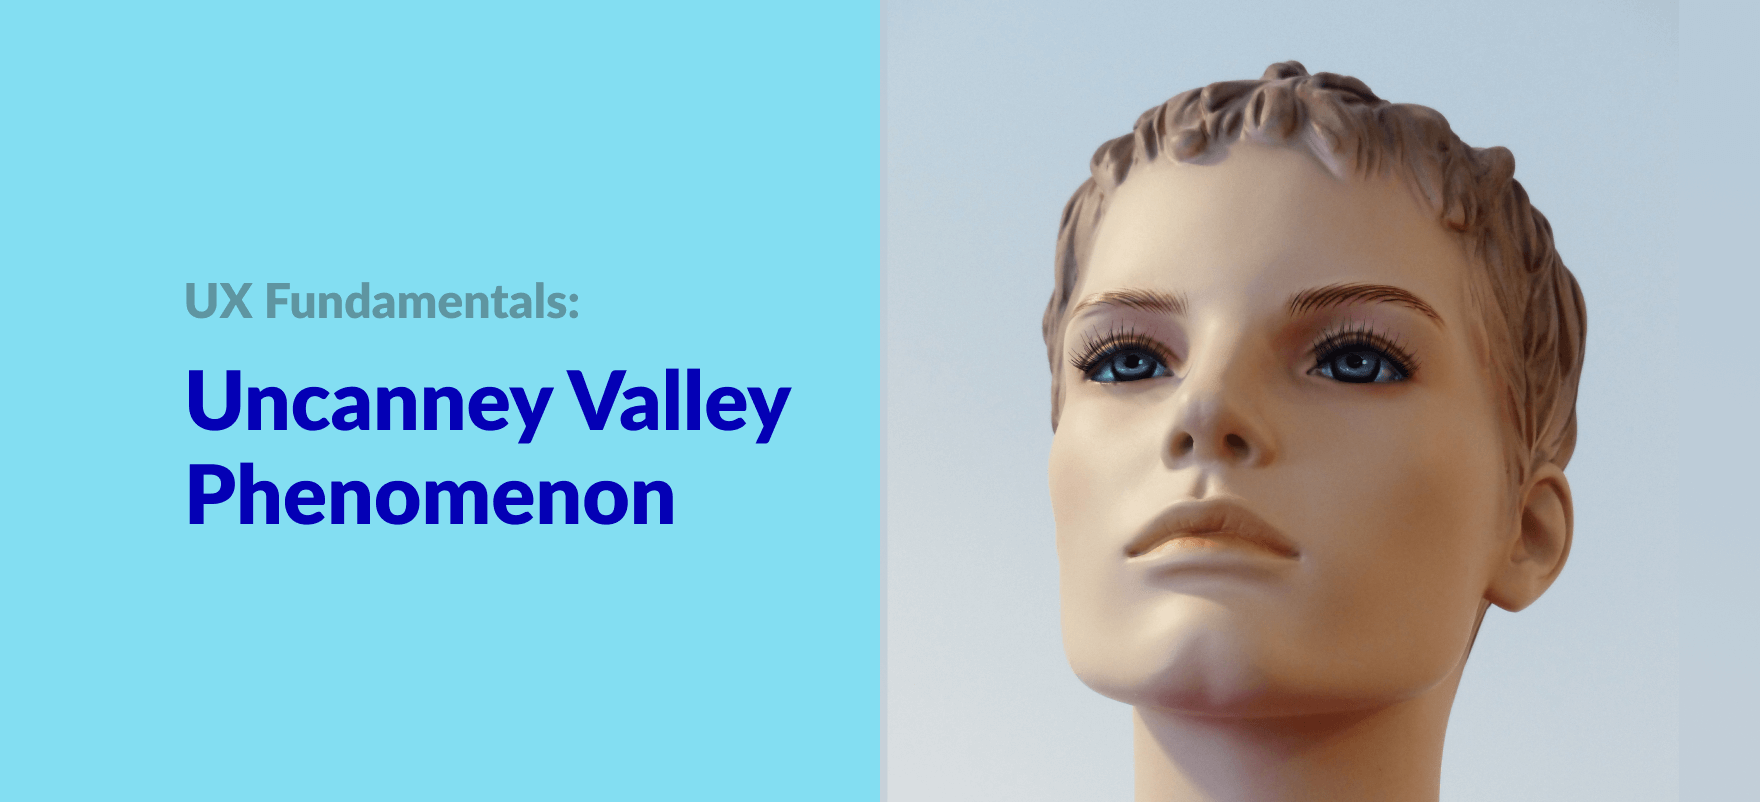 uncanny valley phenomenon article banner